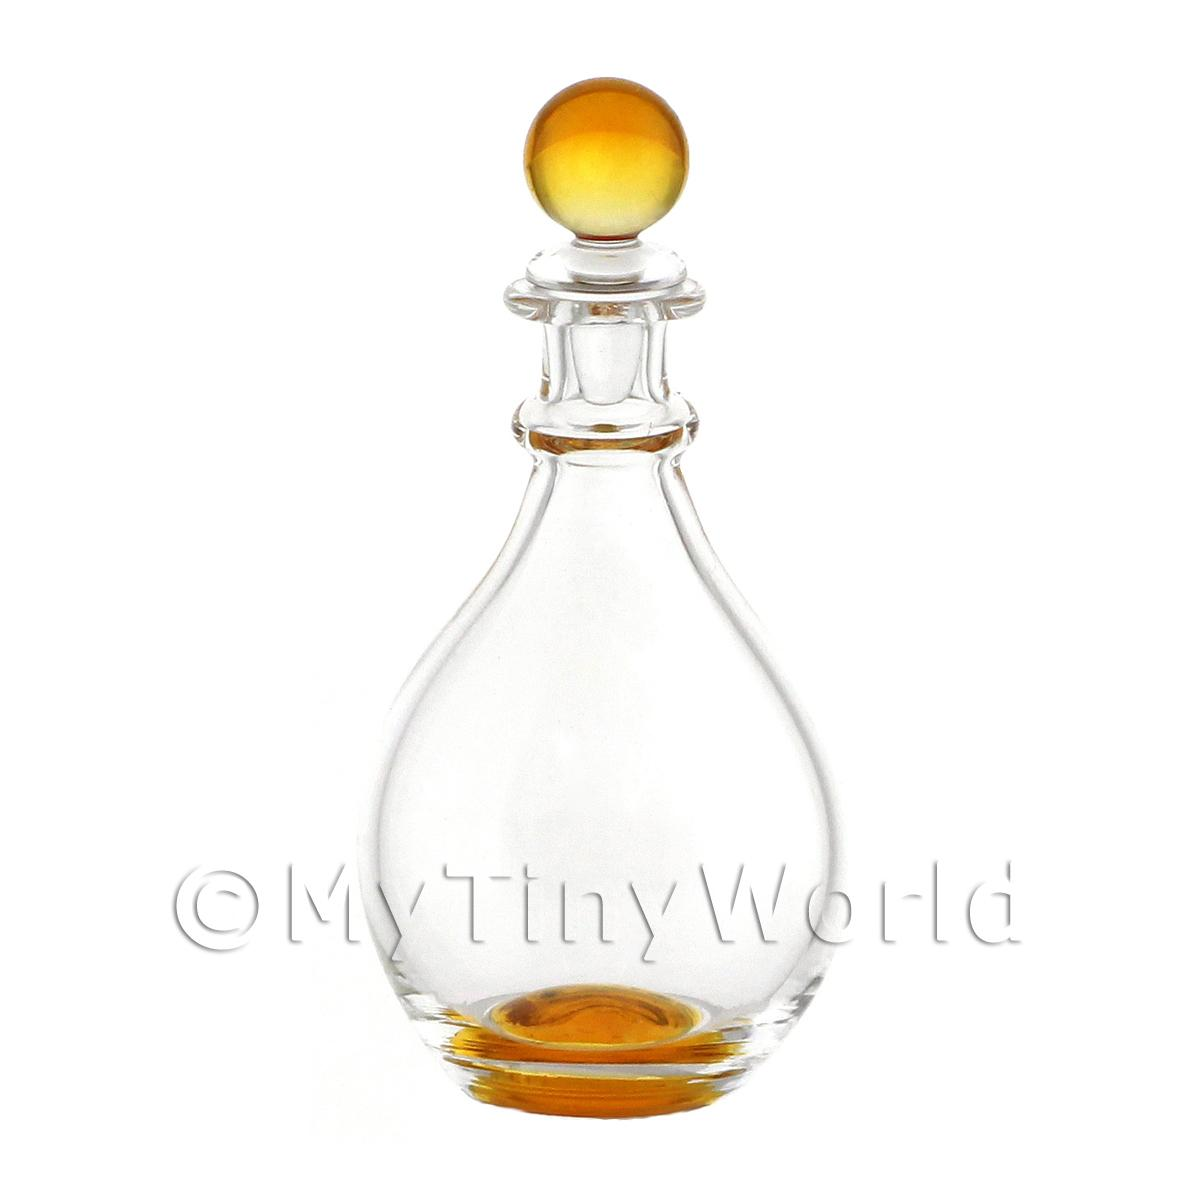 Dolls House Miniature Handmade Amber Glass Curved Decanter